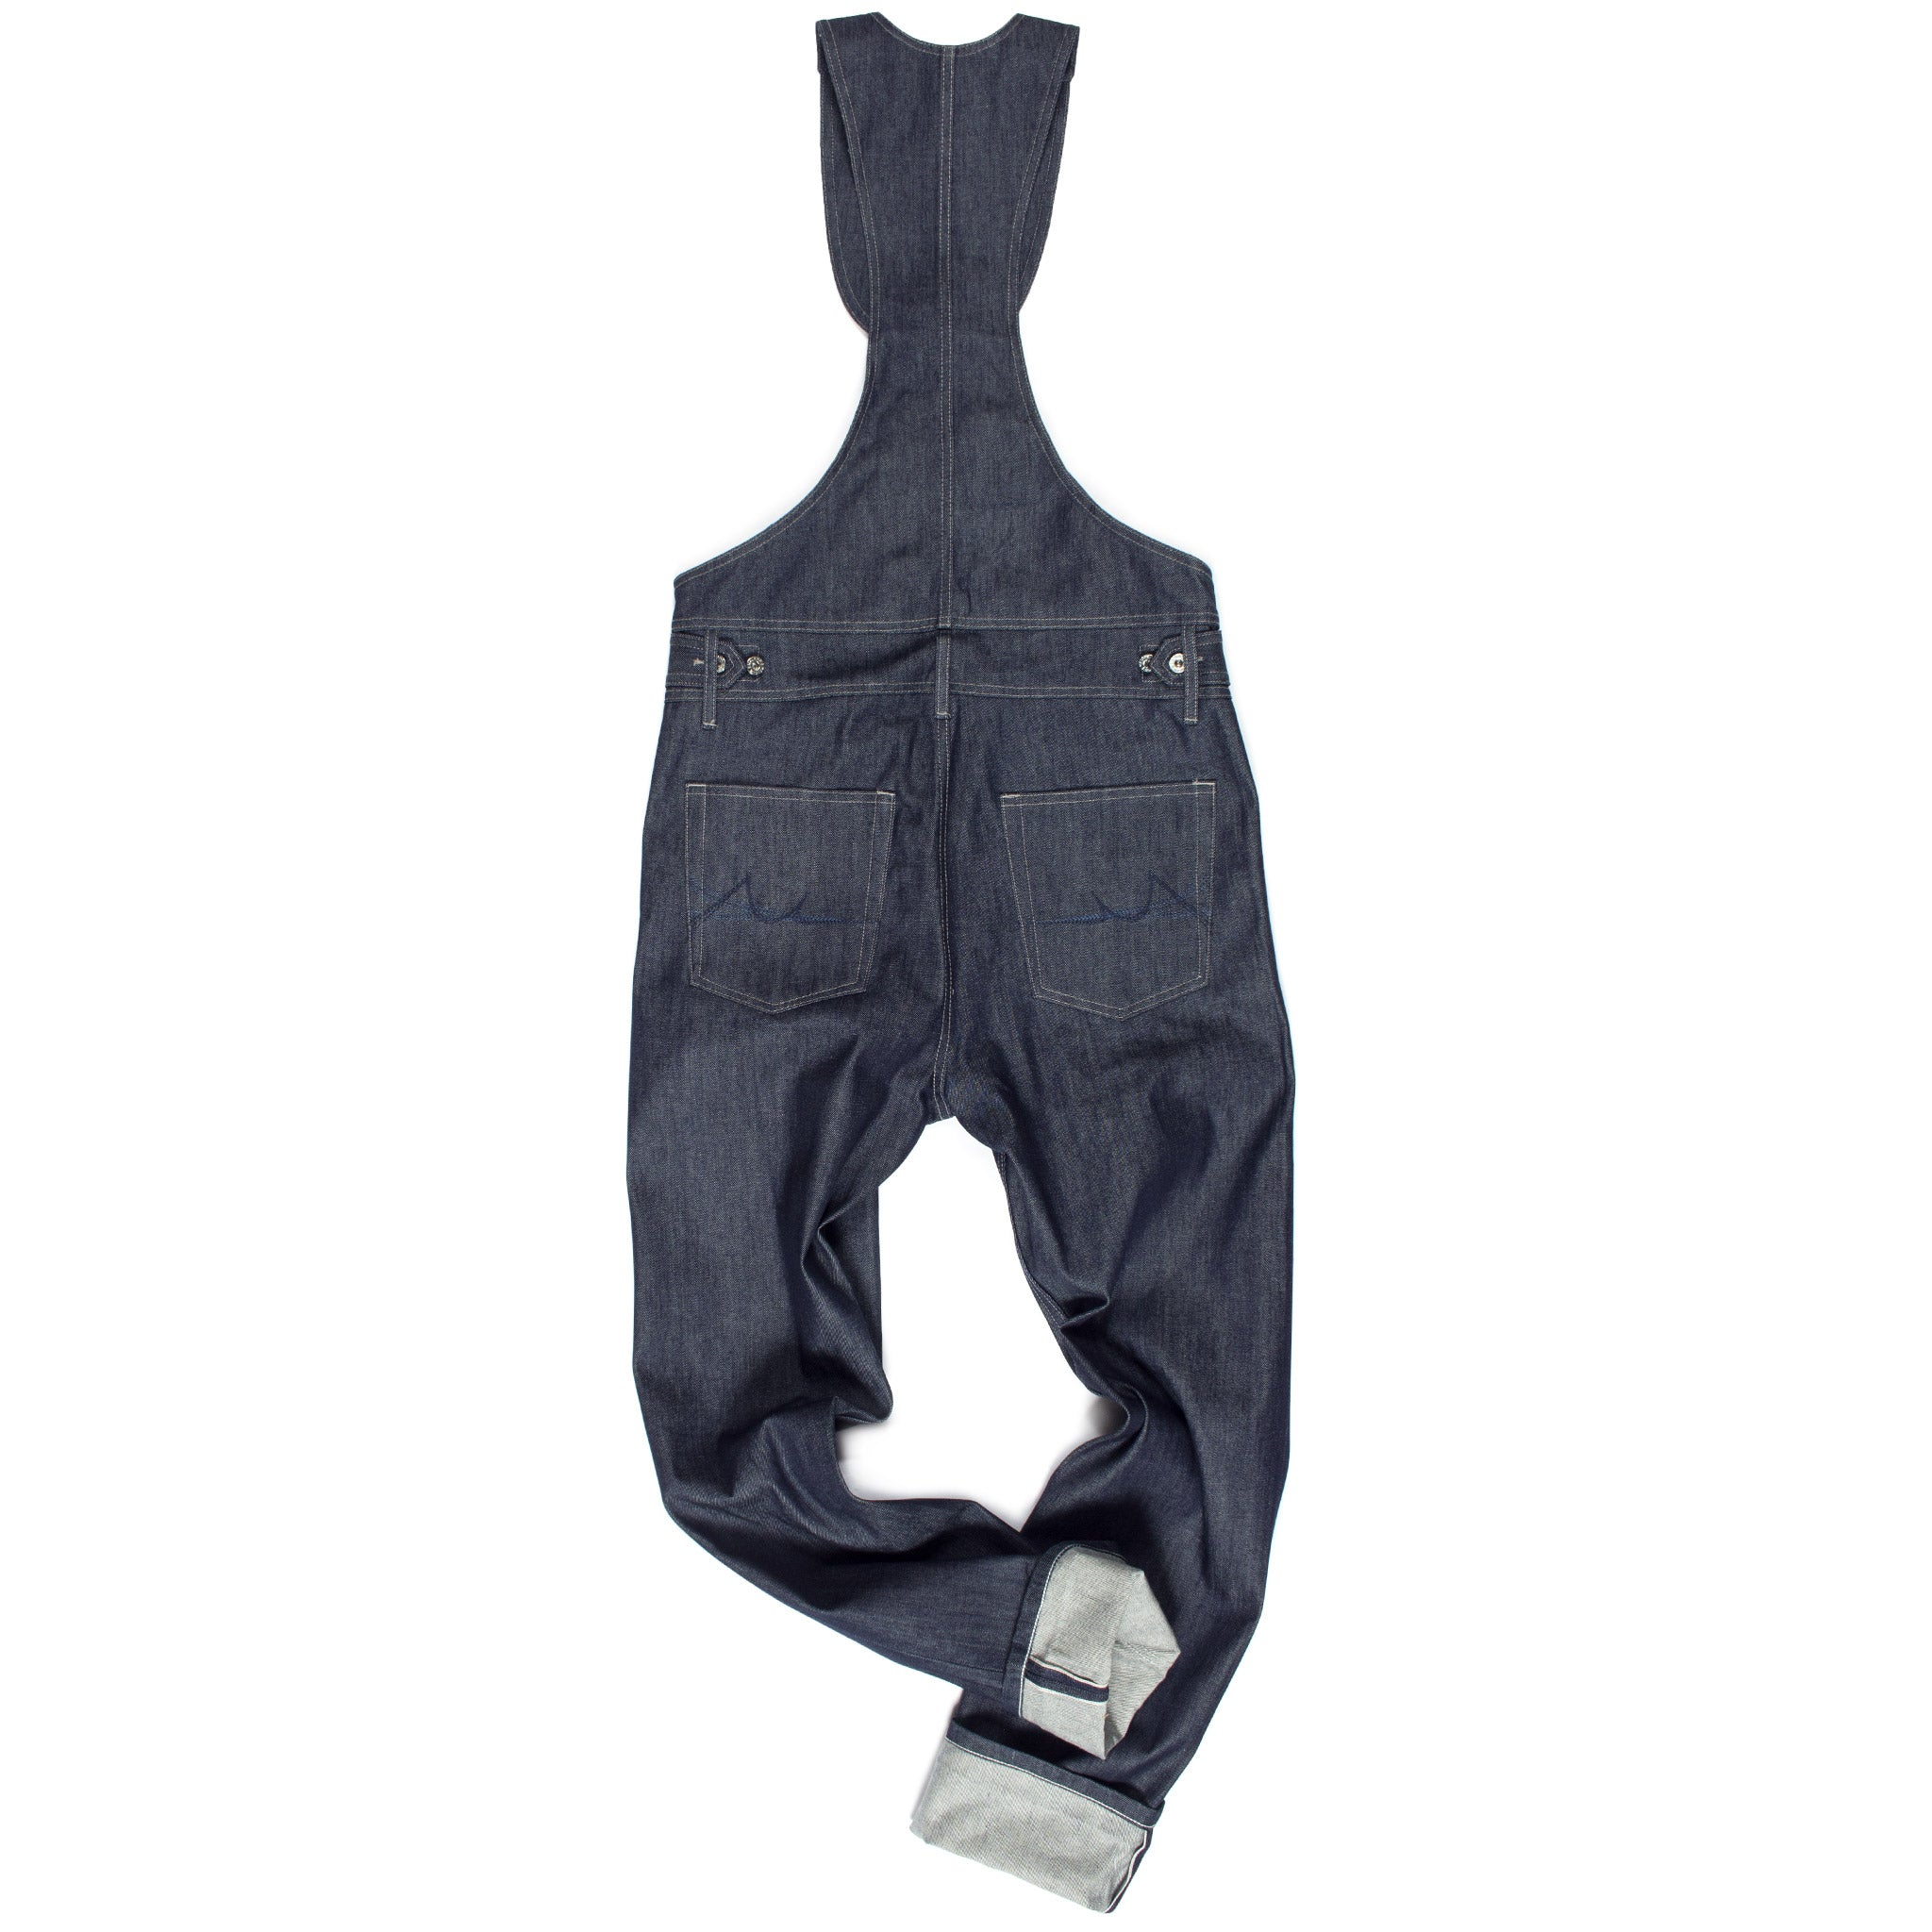 Rear of chain-link selvedge raw denim overalls by Maurice Malone